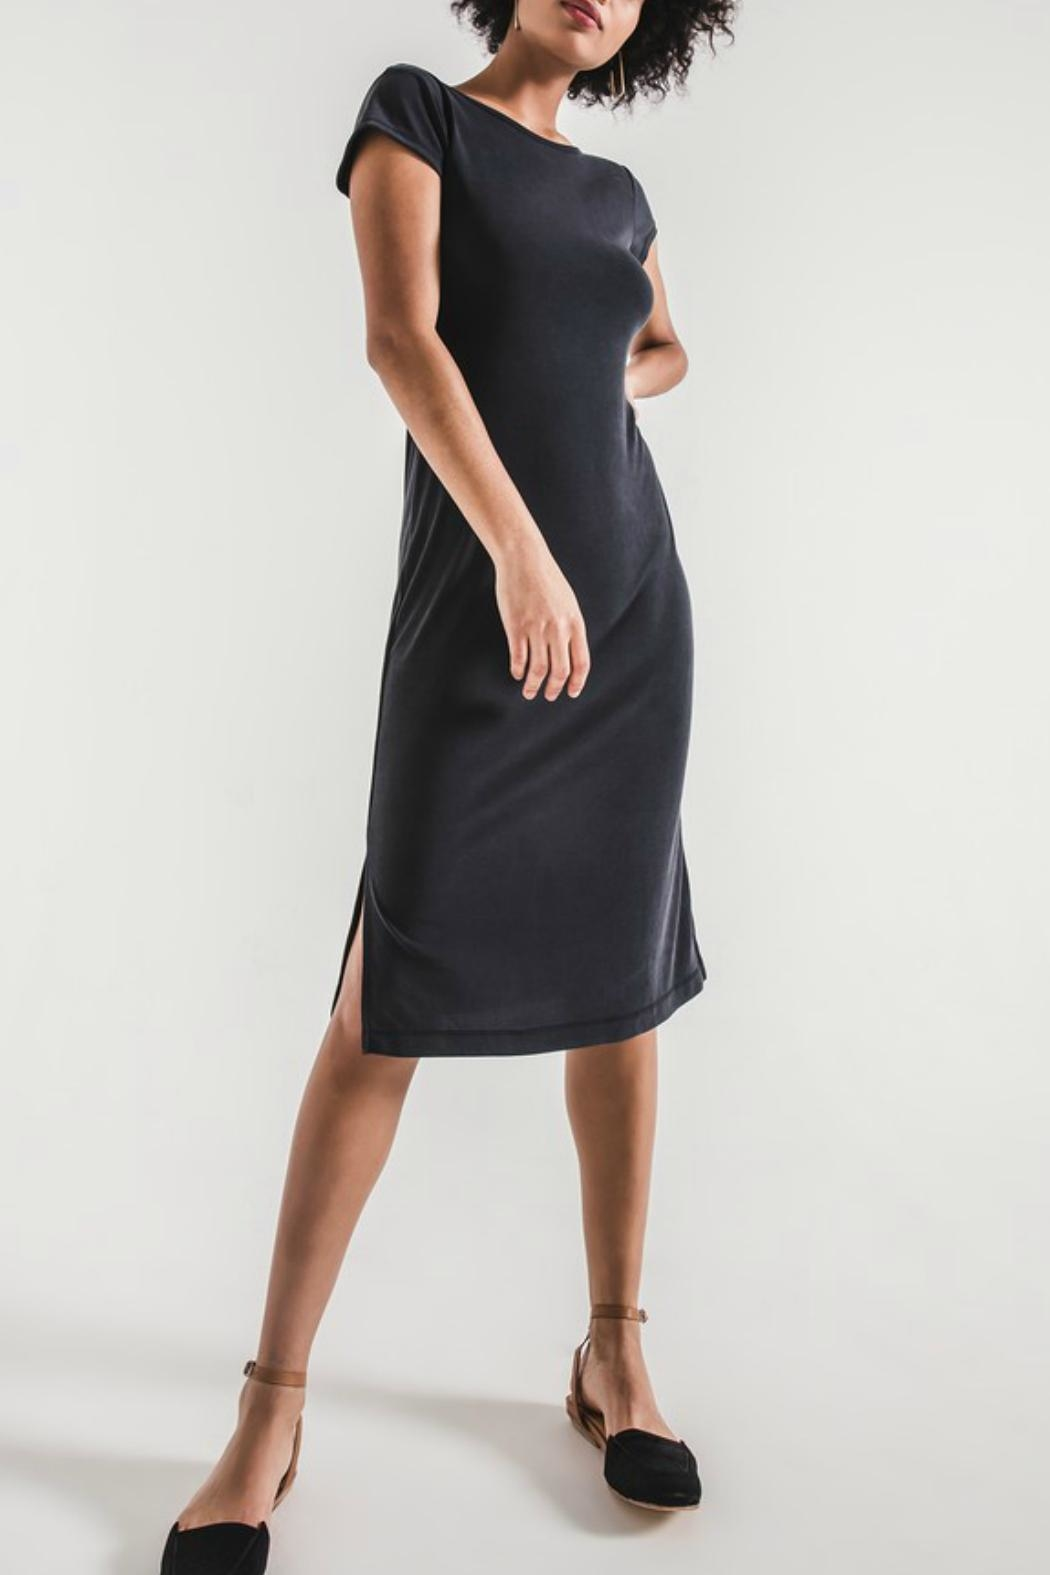 z supply The Muse Dress - Main Image